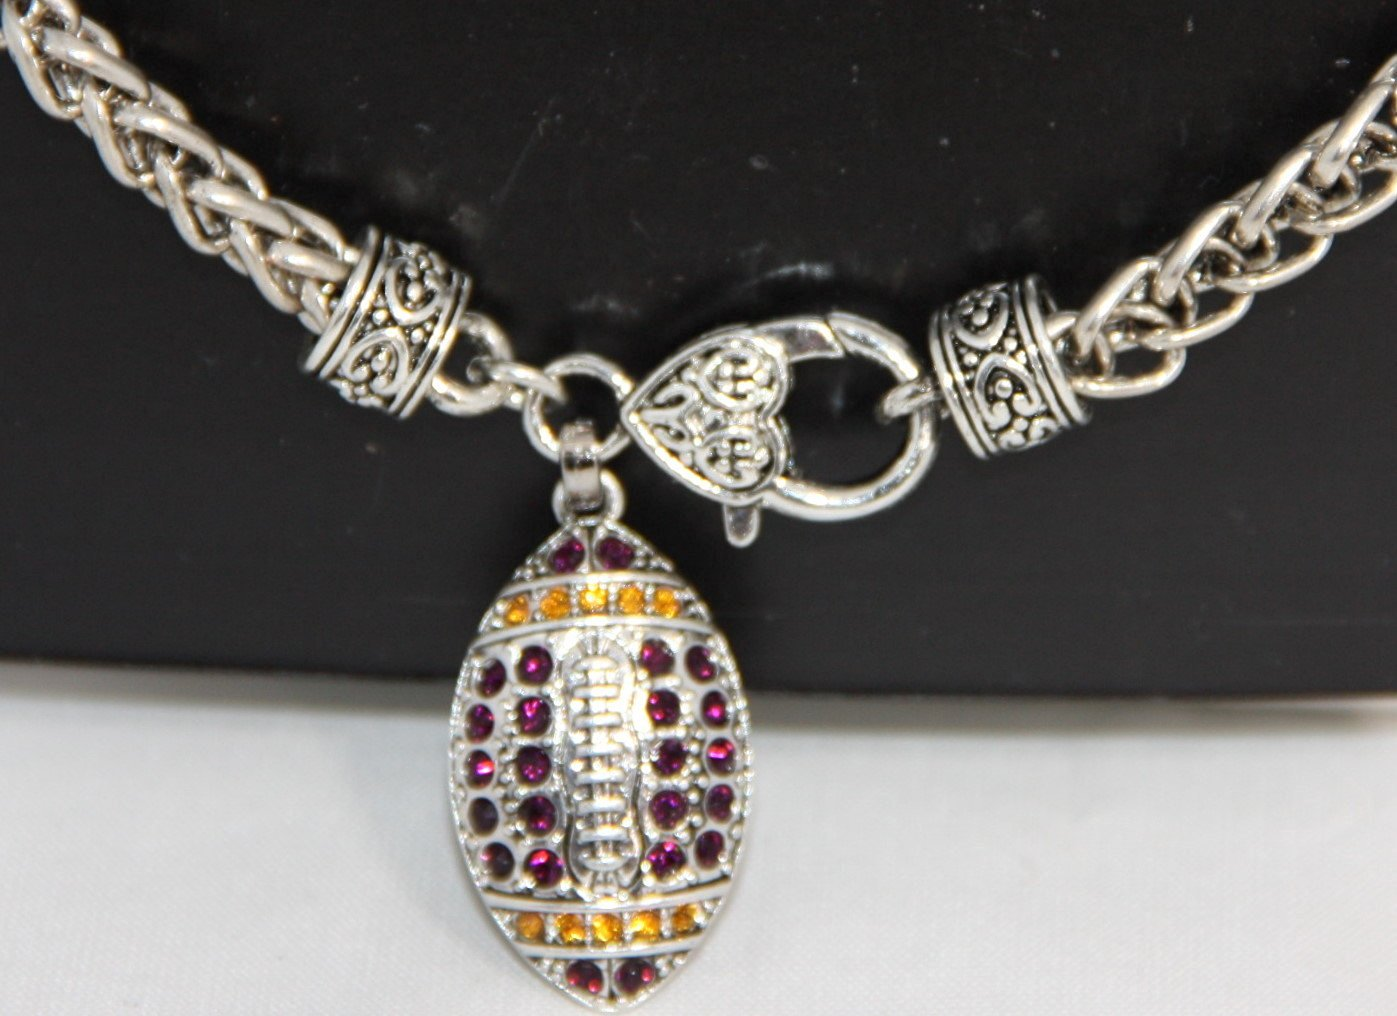 LSU Tigers or Minnesota Vikings Purple & Gold 1 1/4 inch long Rhinestone Football Charm on 7 1/2 Heavy Bracelet with Heart Lobster Claw Clasp - Rhinestone Sparkle!!! The Ultimate Way to Show your Pride in LSU Football & Louisiana State University Students!!